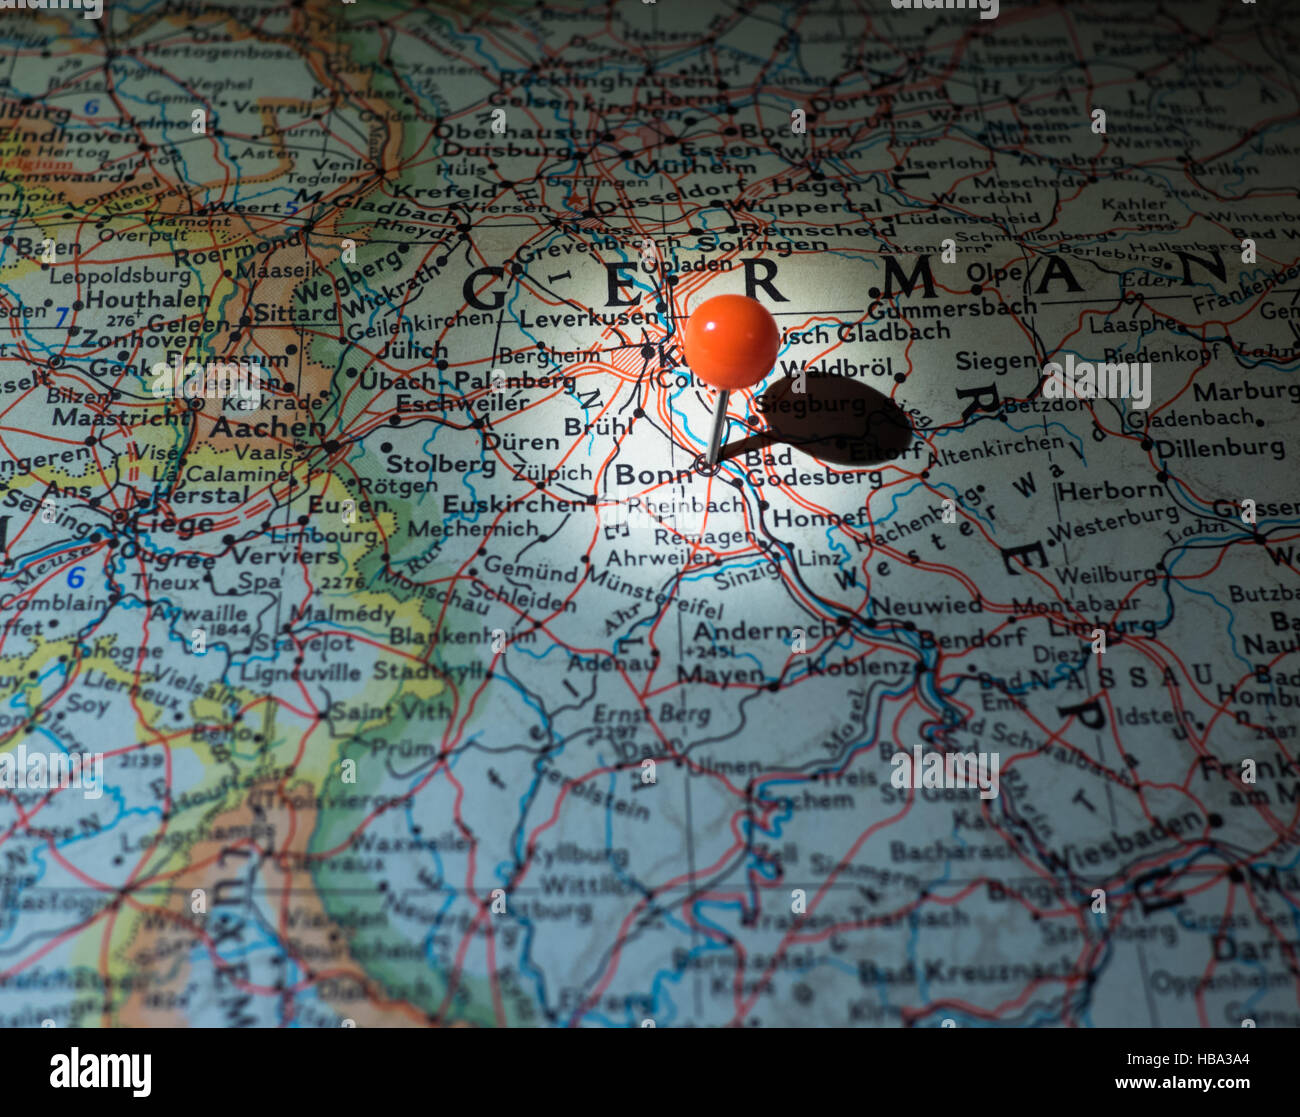 bonn germany location on the route map stock image